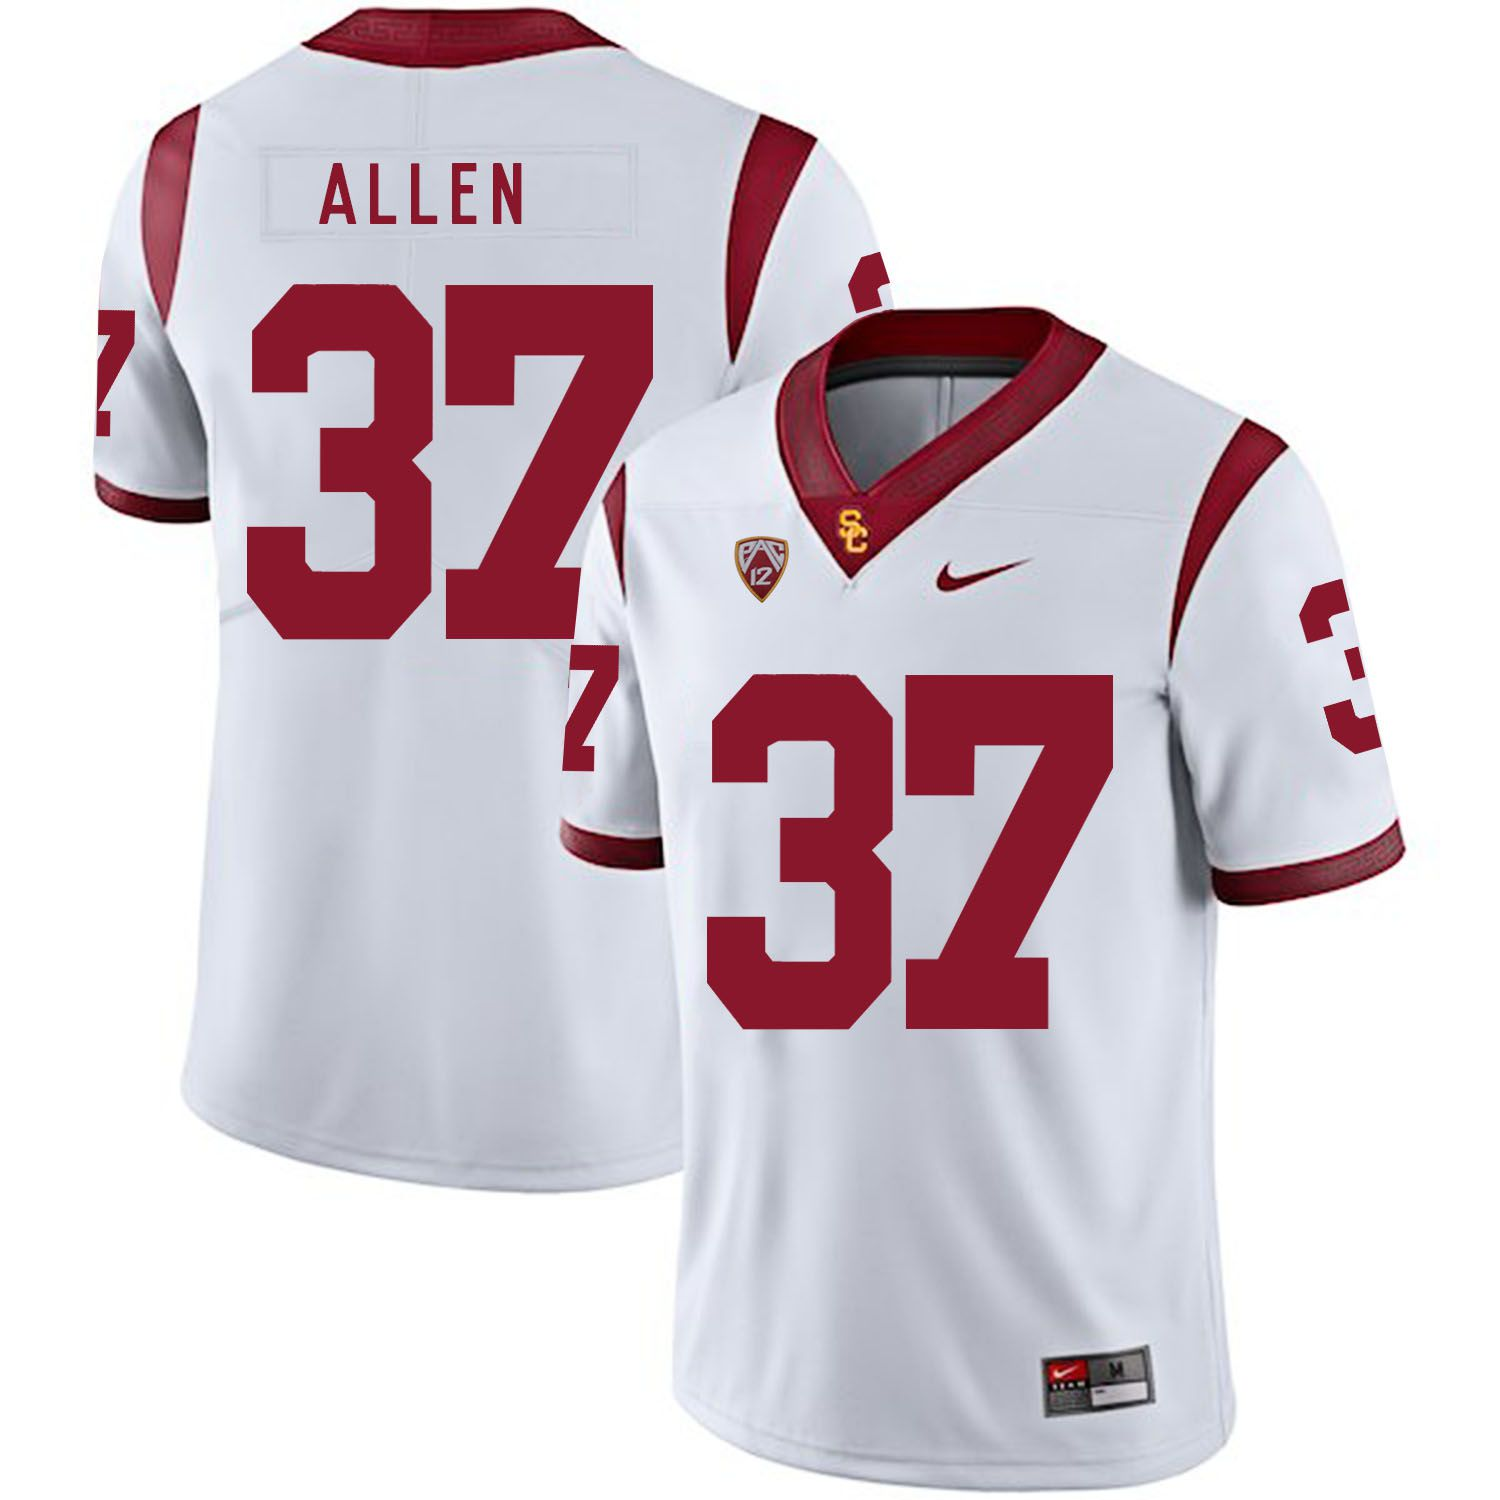 Men USC Trojans 37 Allen White Customized NCAA Jerseys